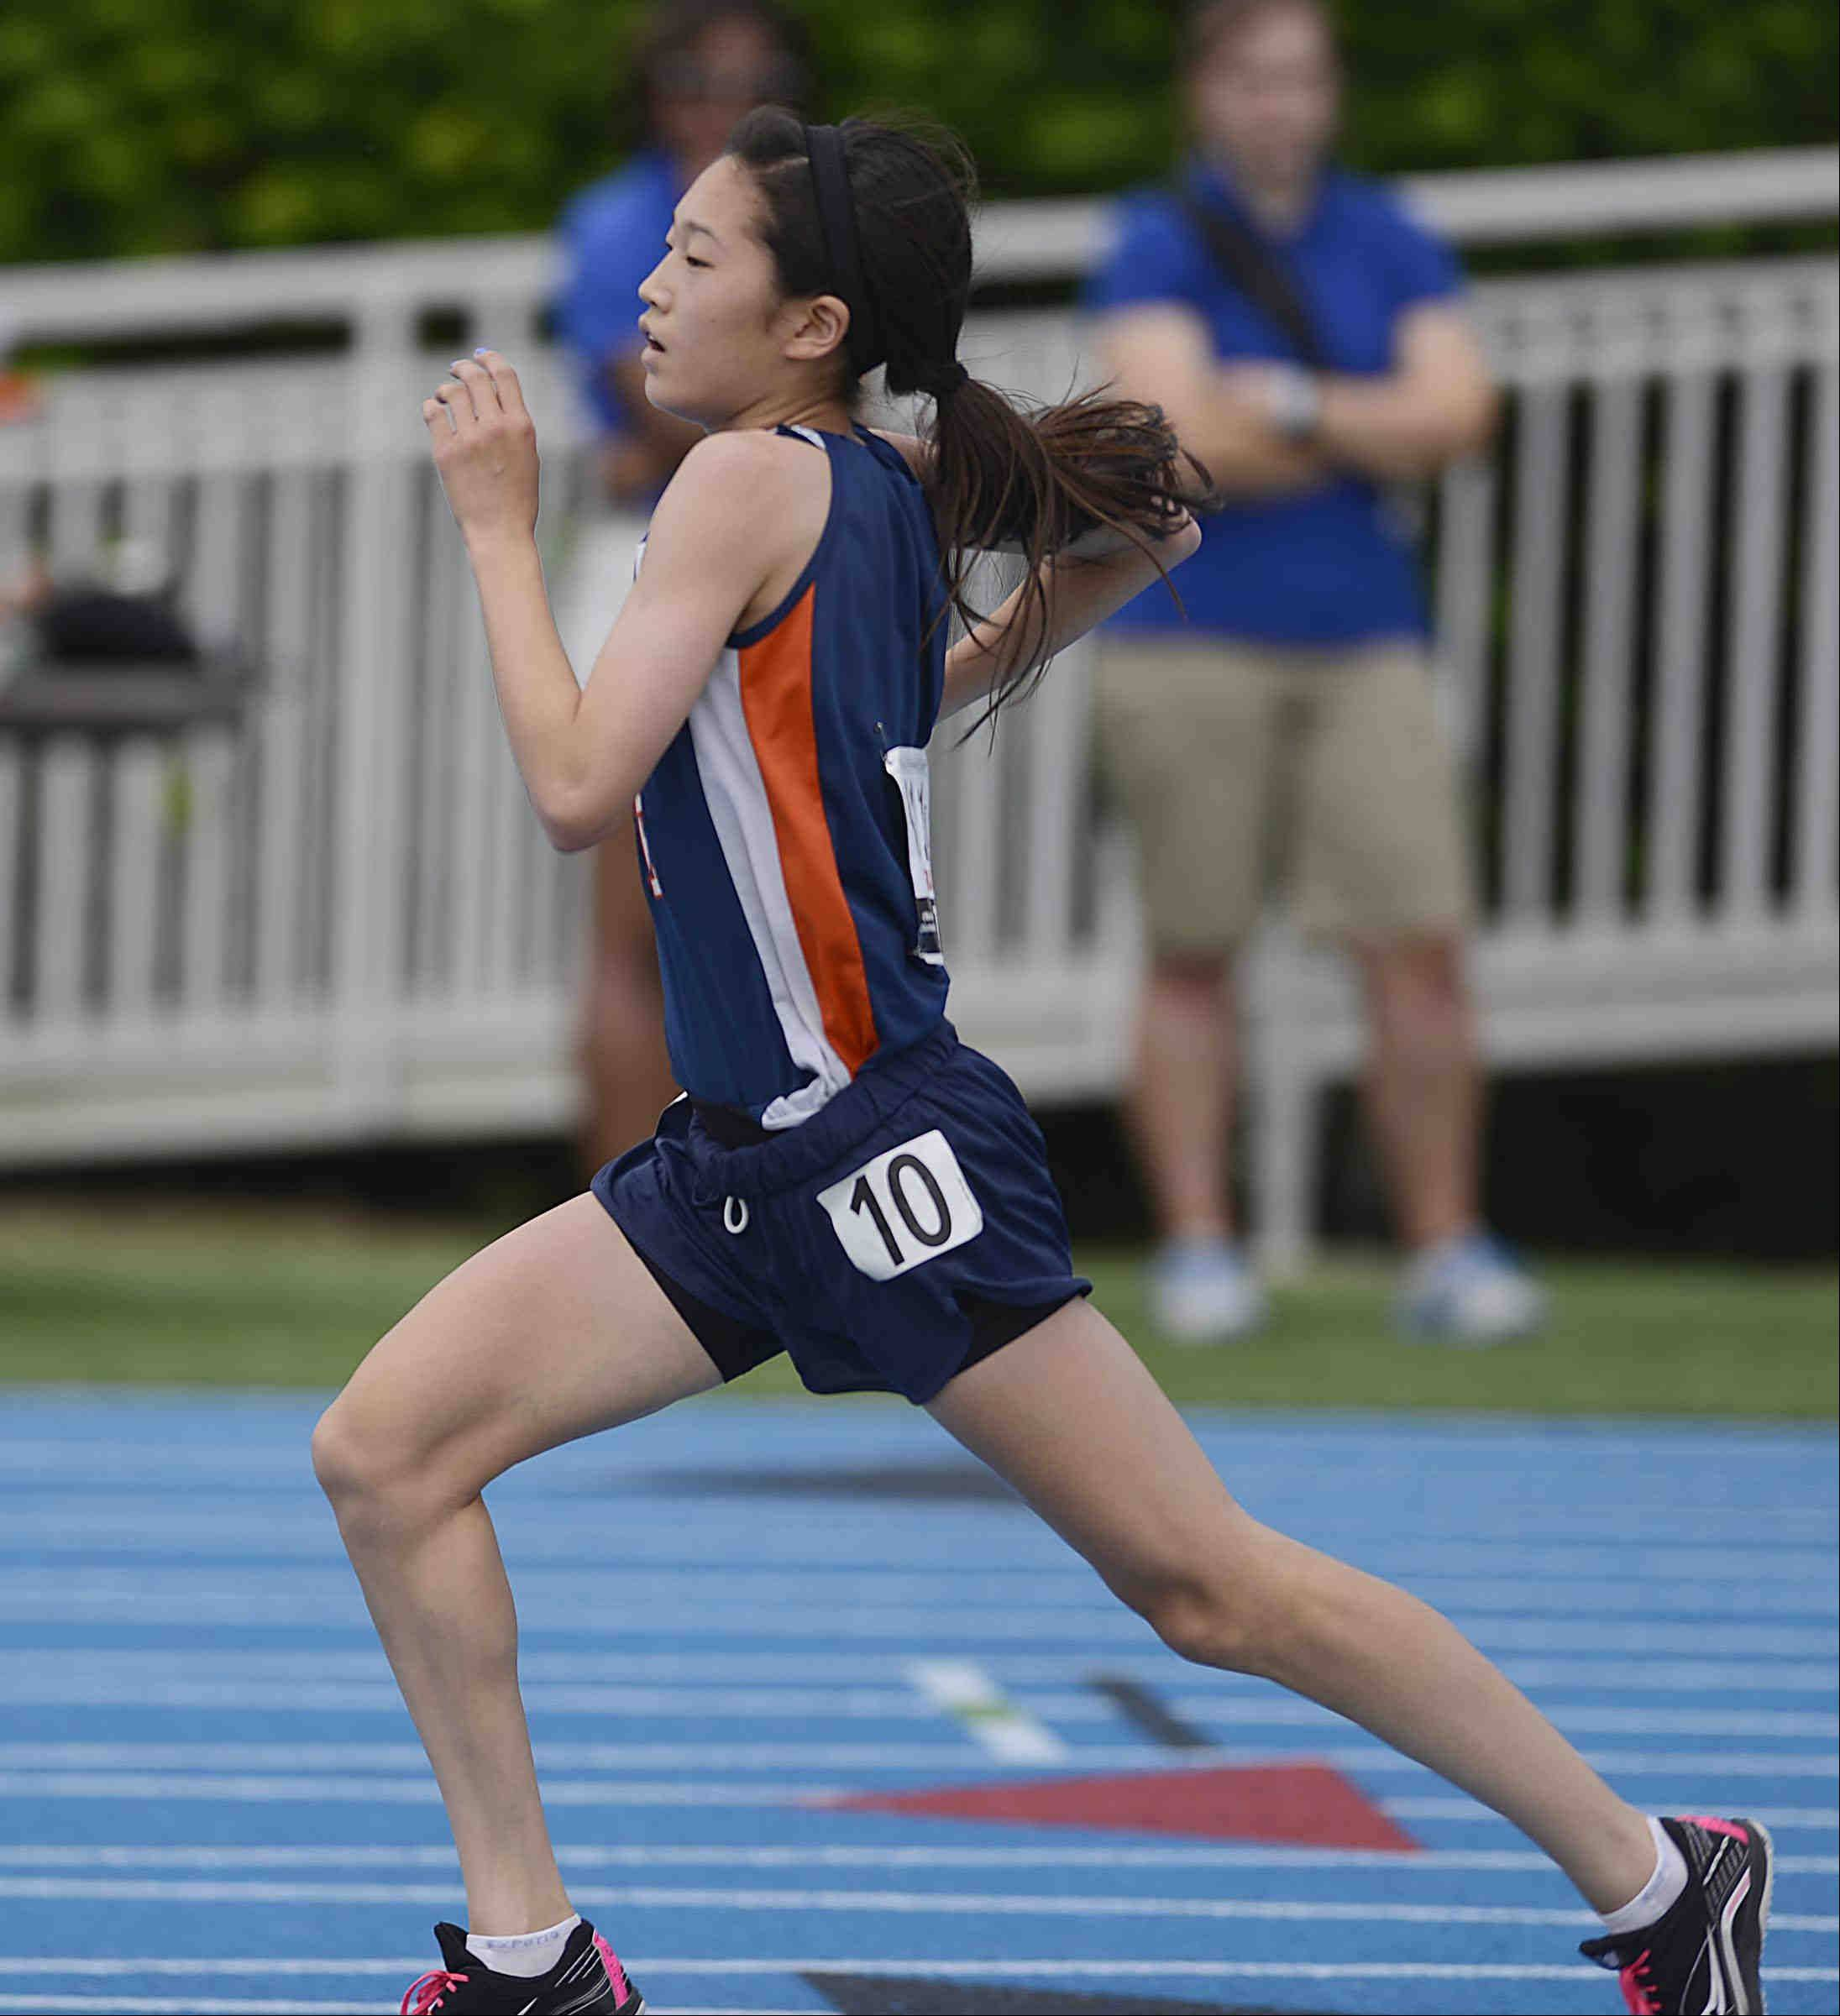 Buffalo Grove's Kaitlyn Ko, a freshman, wins her section of the 1,600 meter run Saturday at the Class 3A girls state track and field finals at O'Brien Stadium at Eastern Illinois University in Charleston.